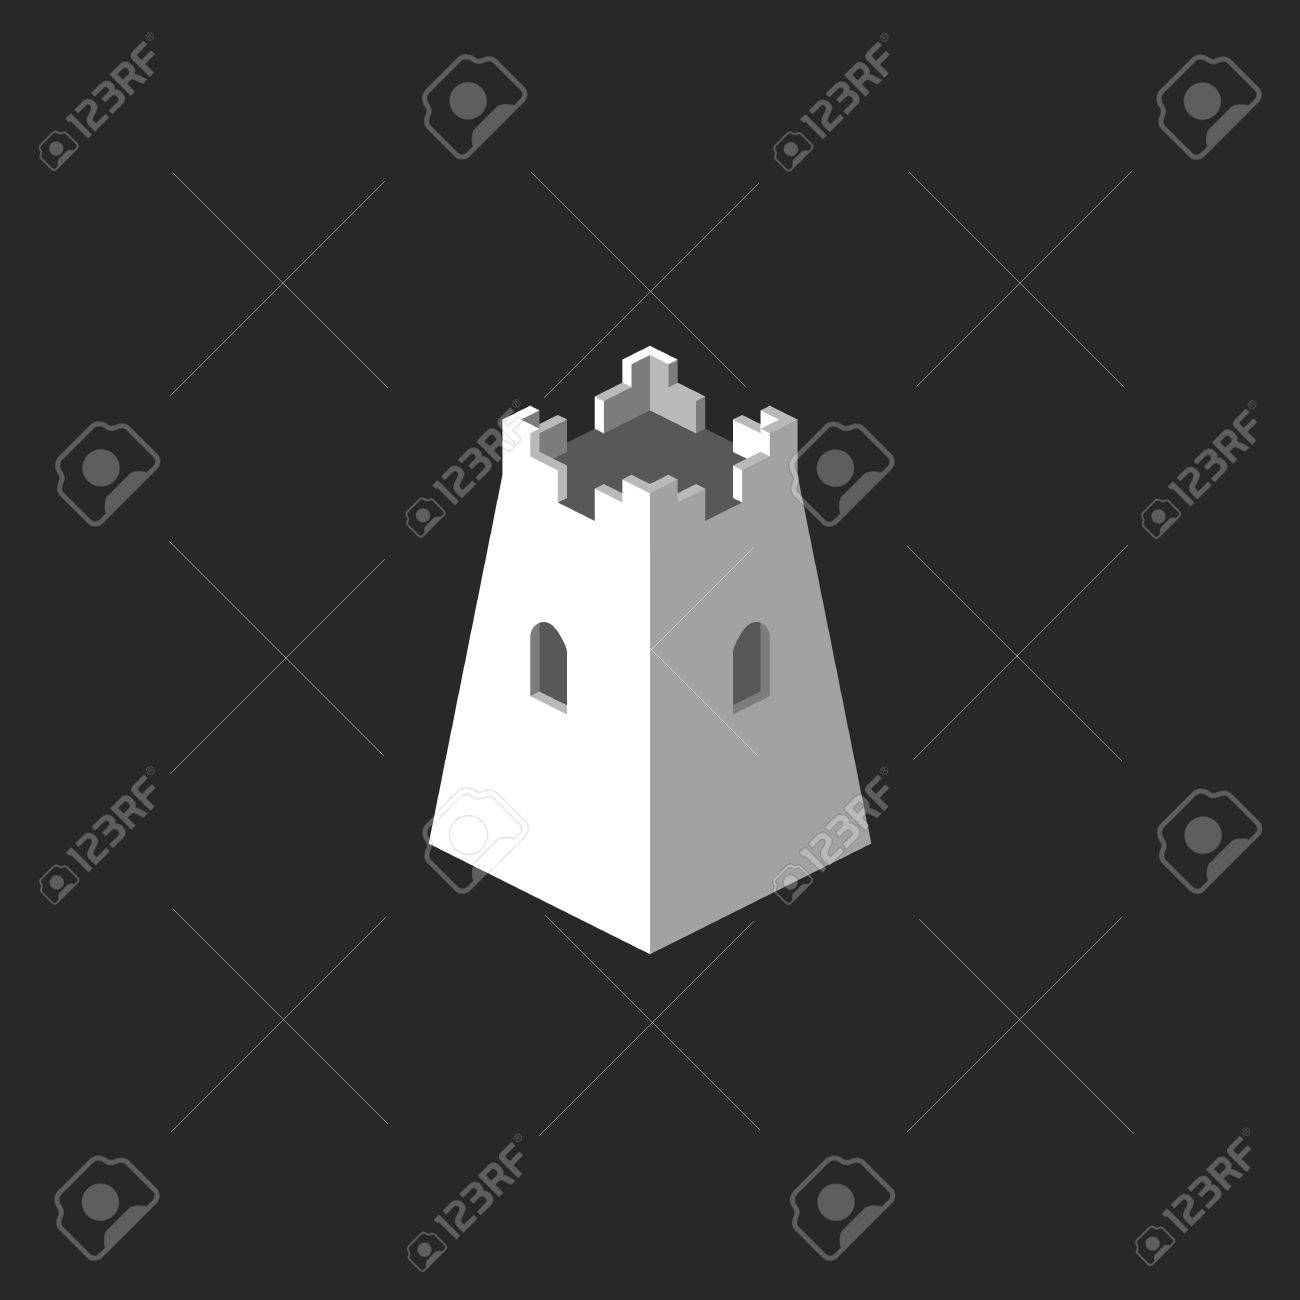 Tower Abstract 3D Mockup Castle Icon Business Card Symbol Template Stock Vector